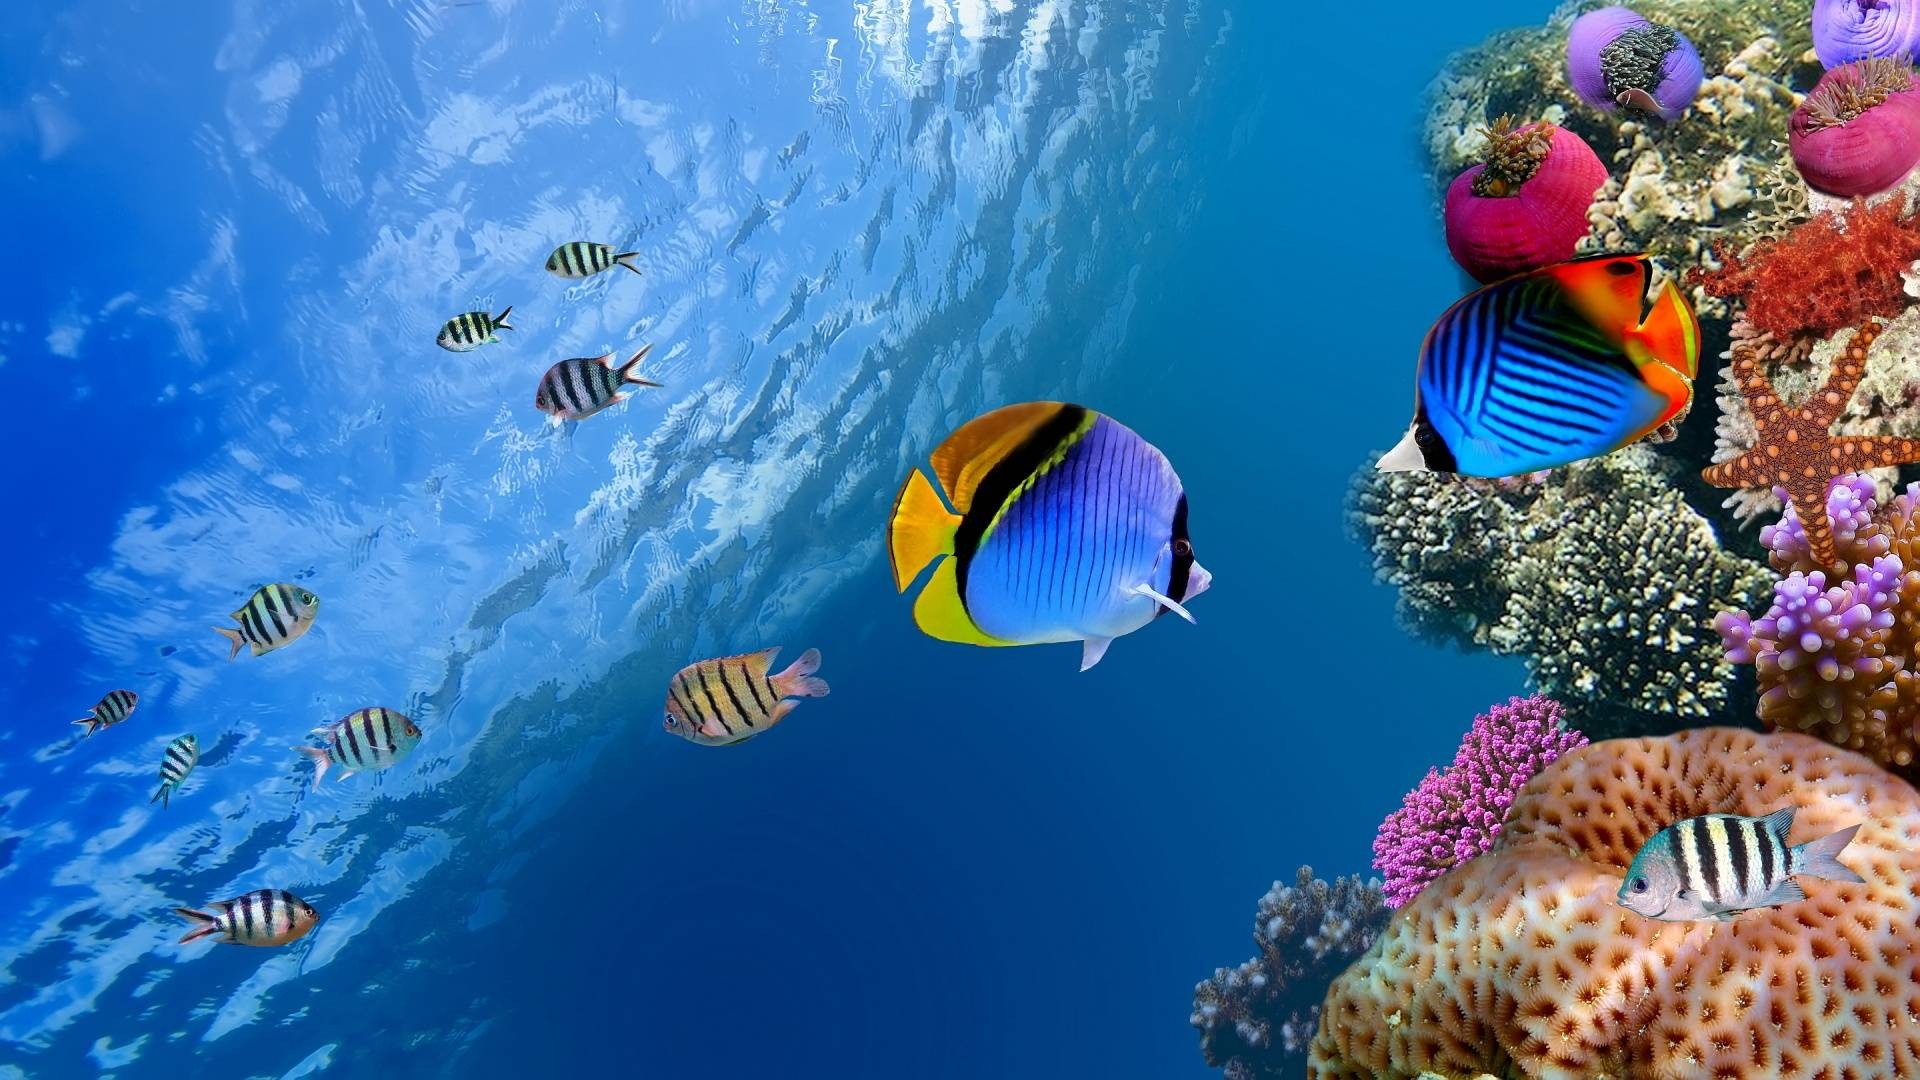 hd live fish wallpaper hd moving fish wallpaper 1920x1080